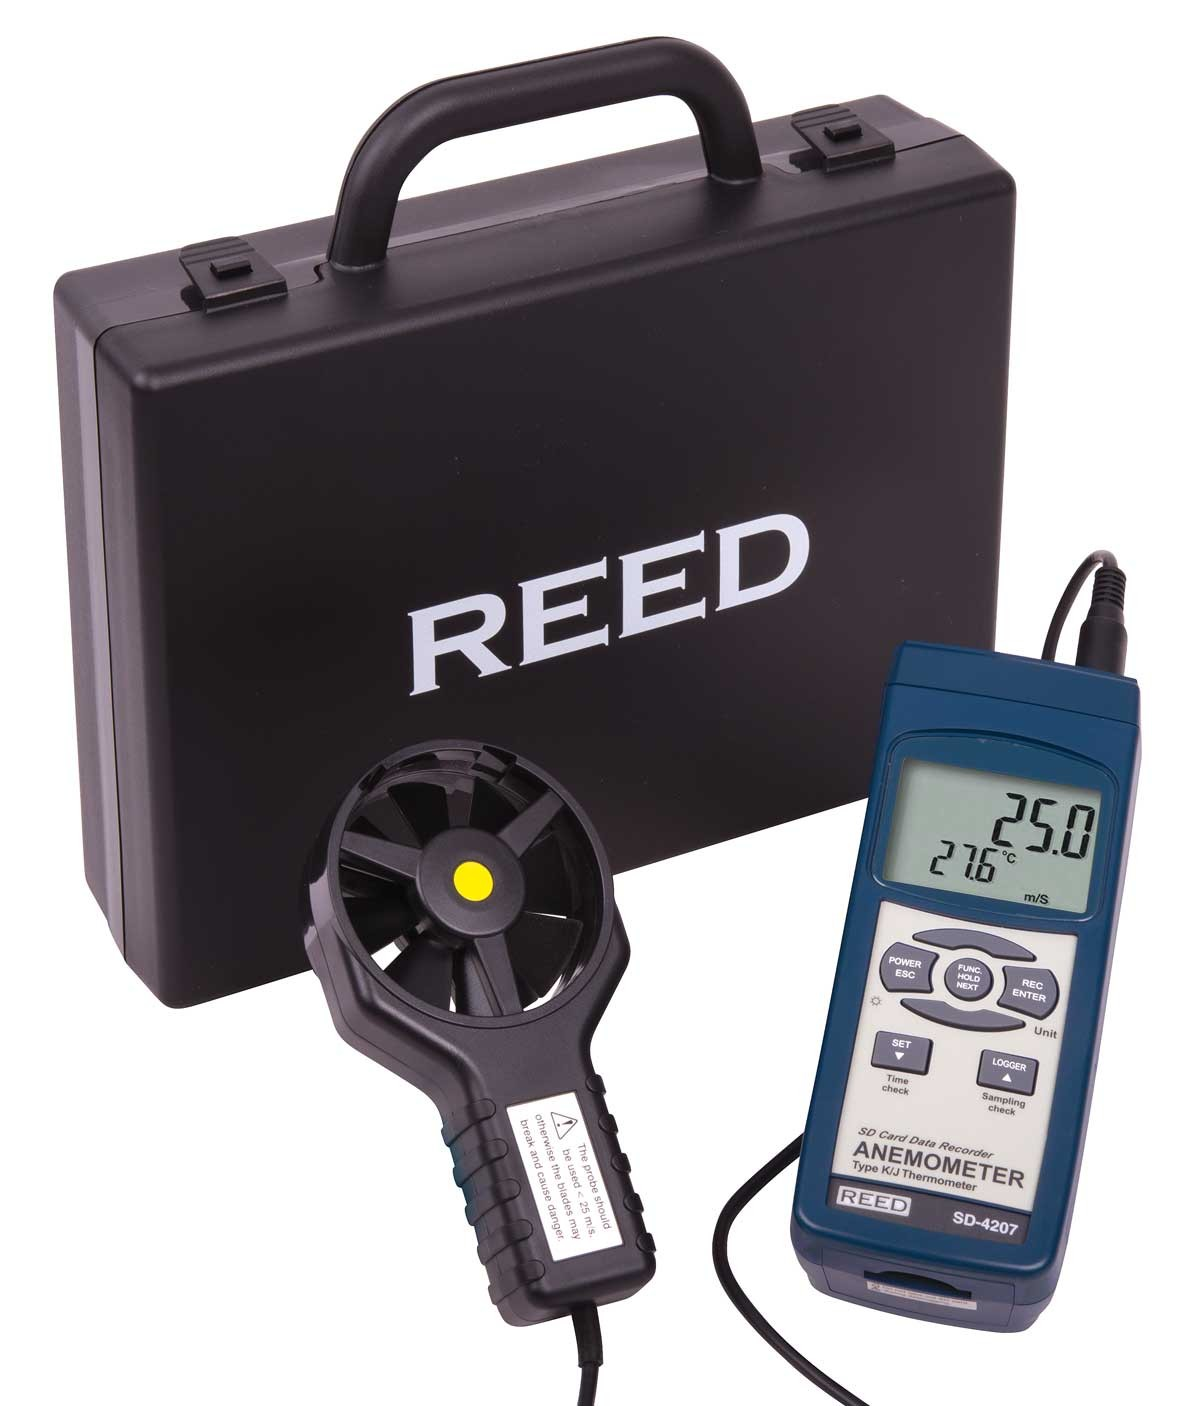 REED SD-4207 SD Series Vane Thermo-Anemometer, Datalogger, with Temperature-Included